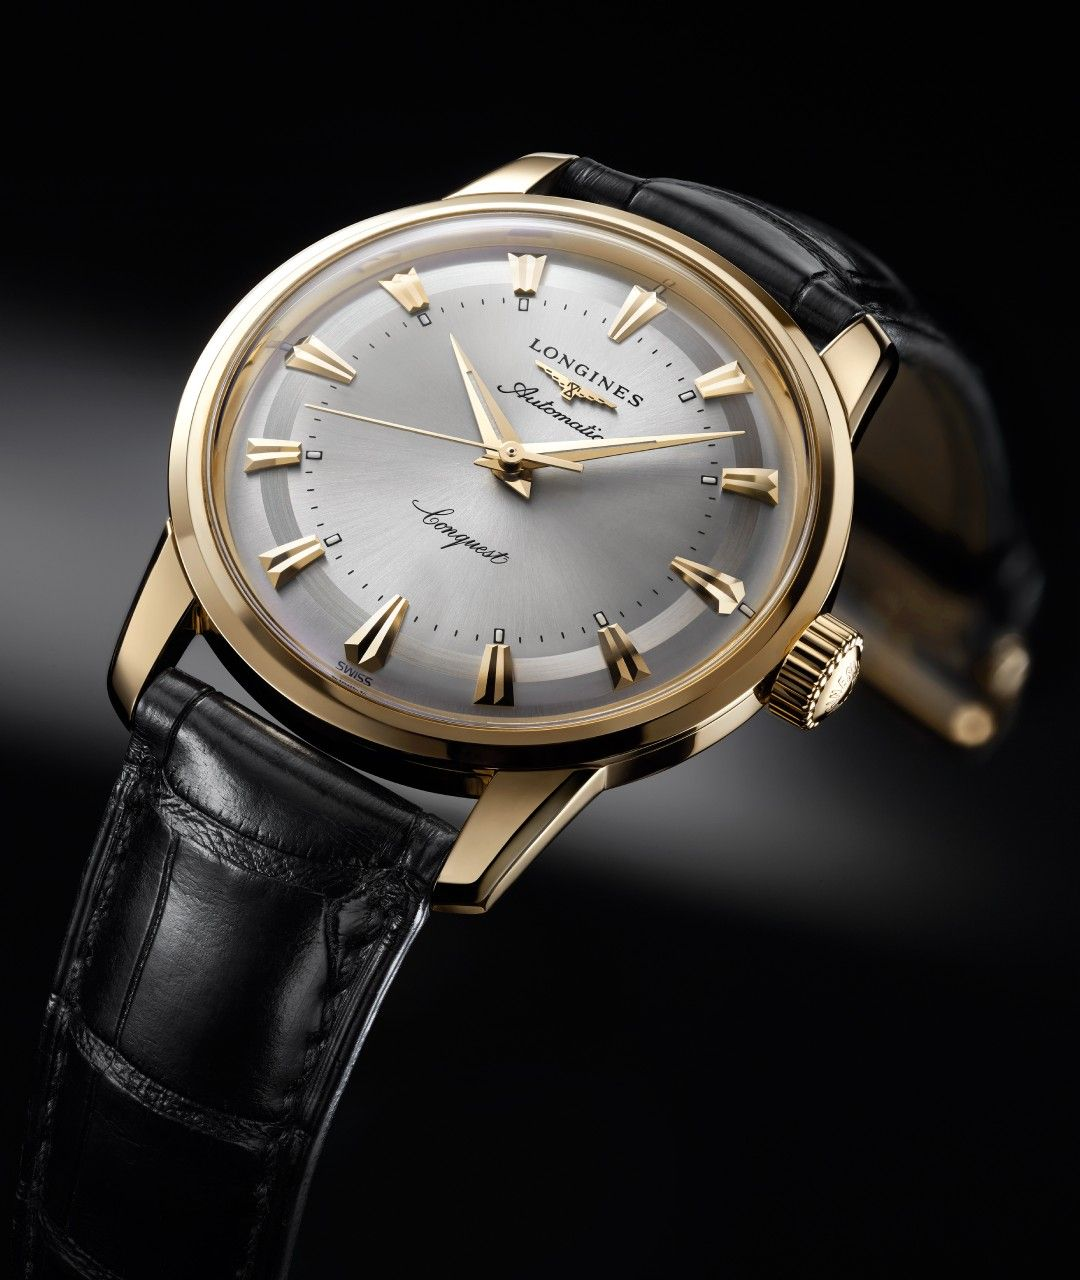 Heritage Collection from Longines